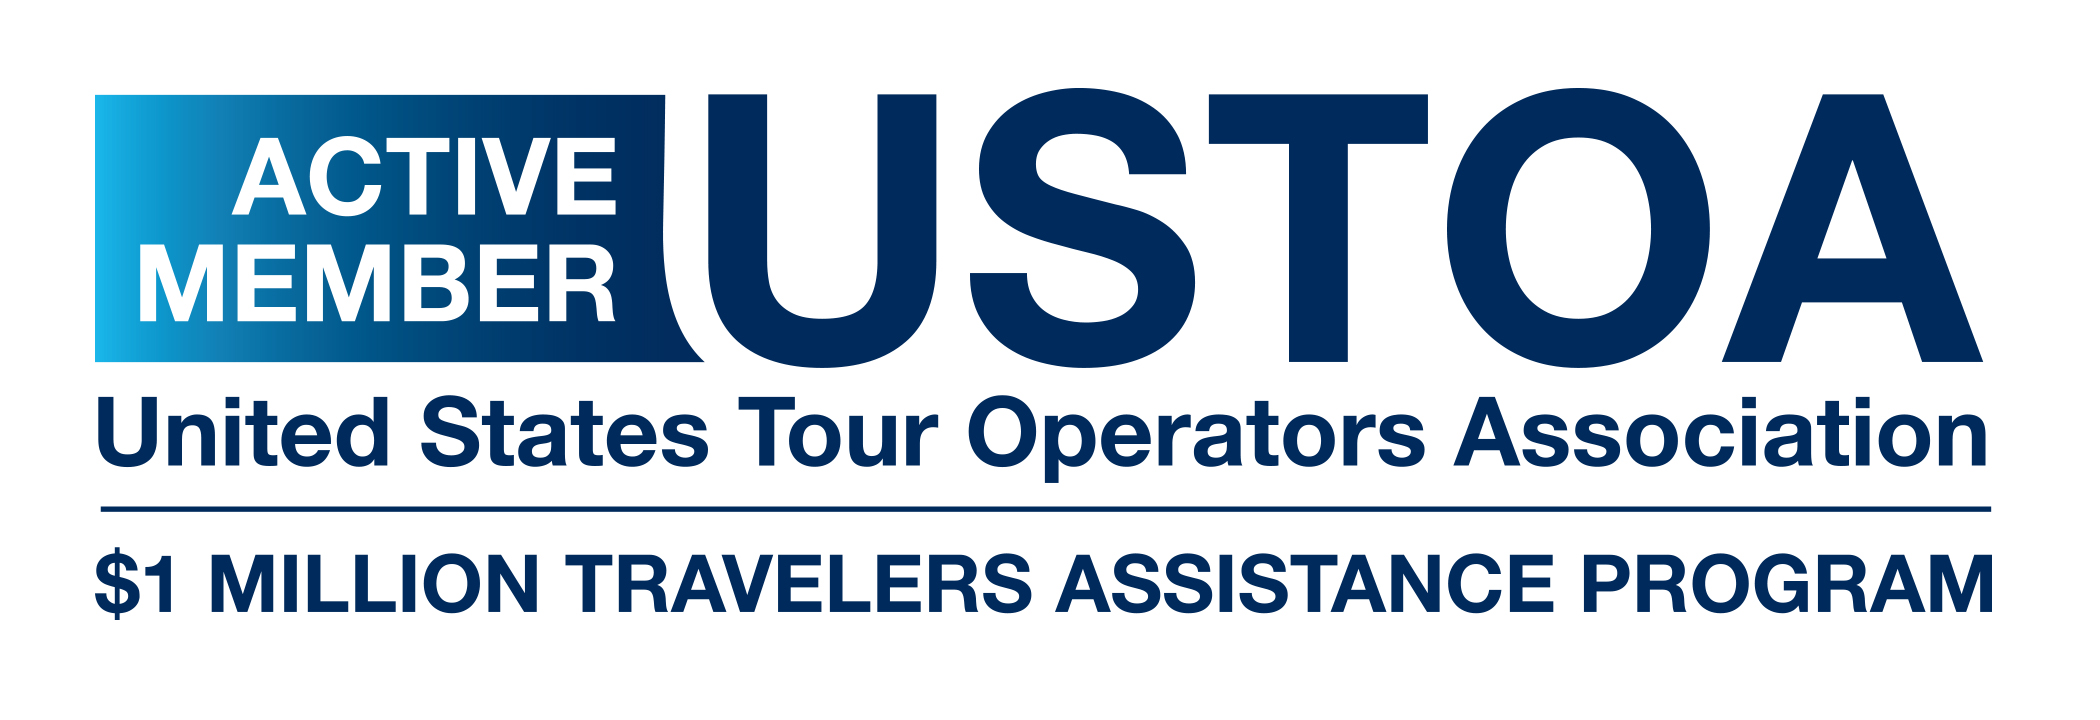 United States Tour Operator Association